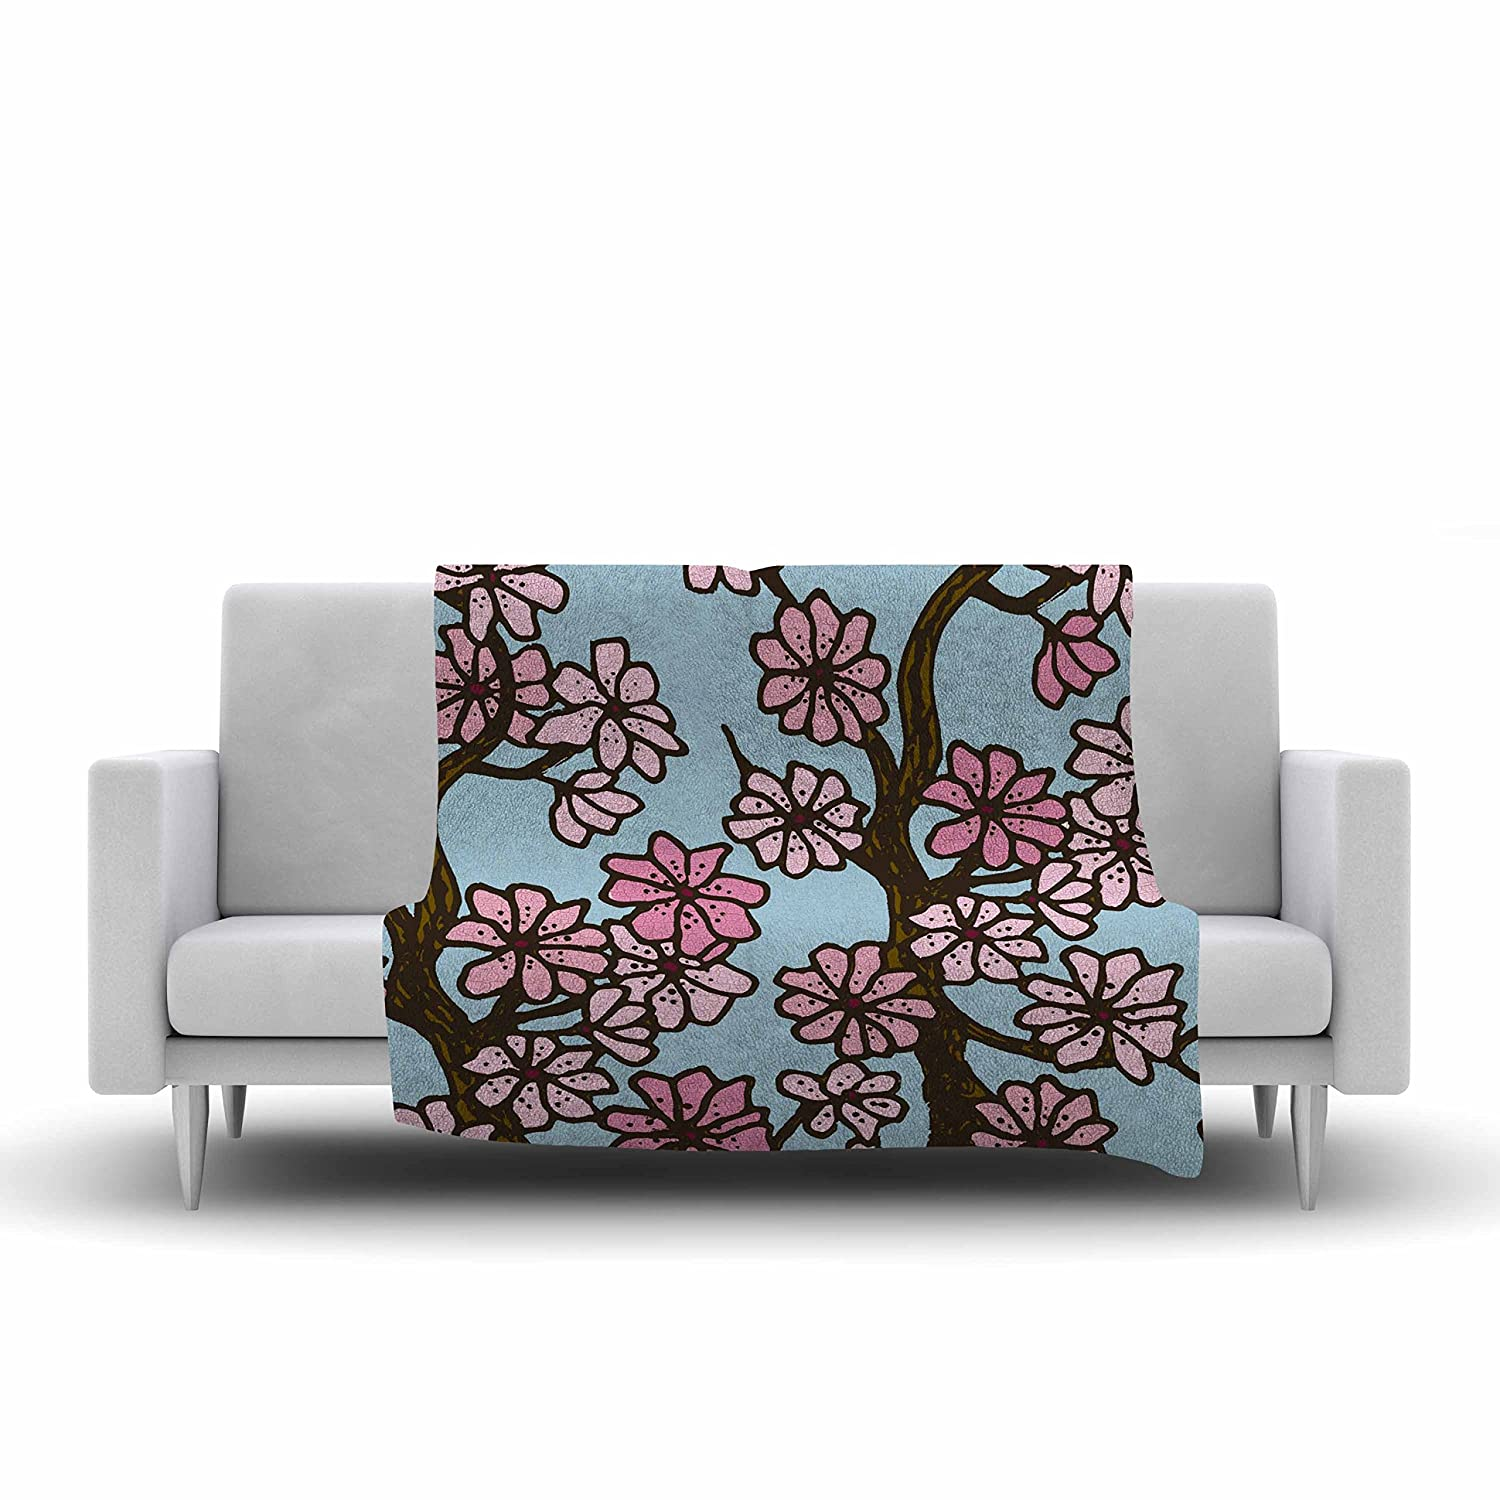 60 by 50 Kess InHouse Art Love Passion Cherry Blossom Day Floral Illustration Fleece Throw Blanket